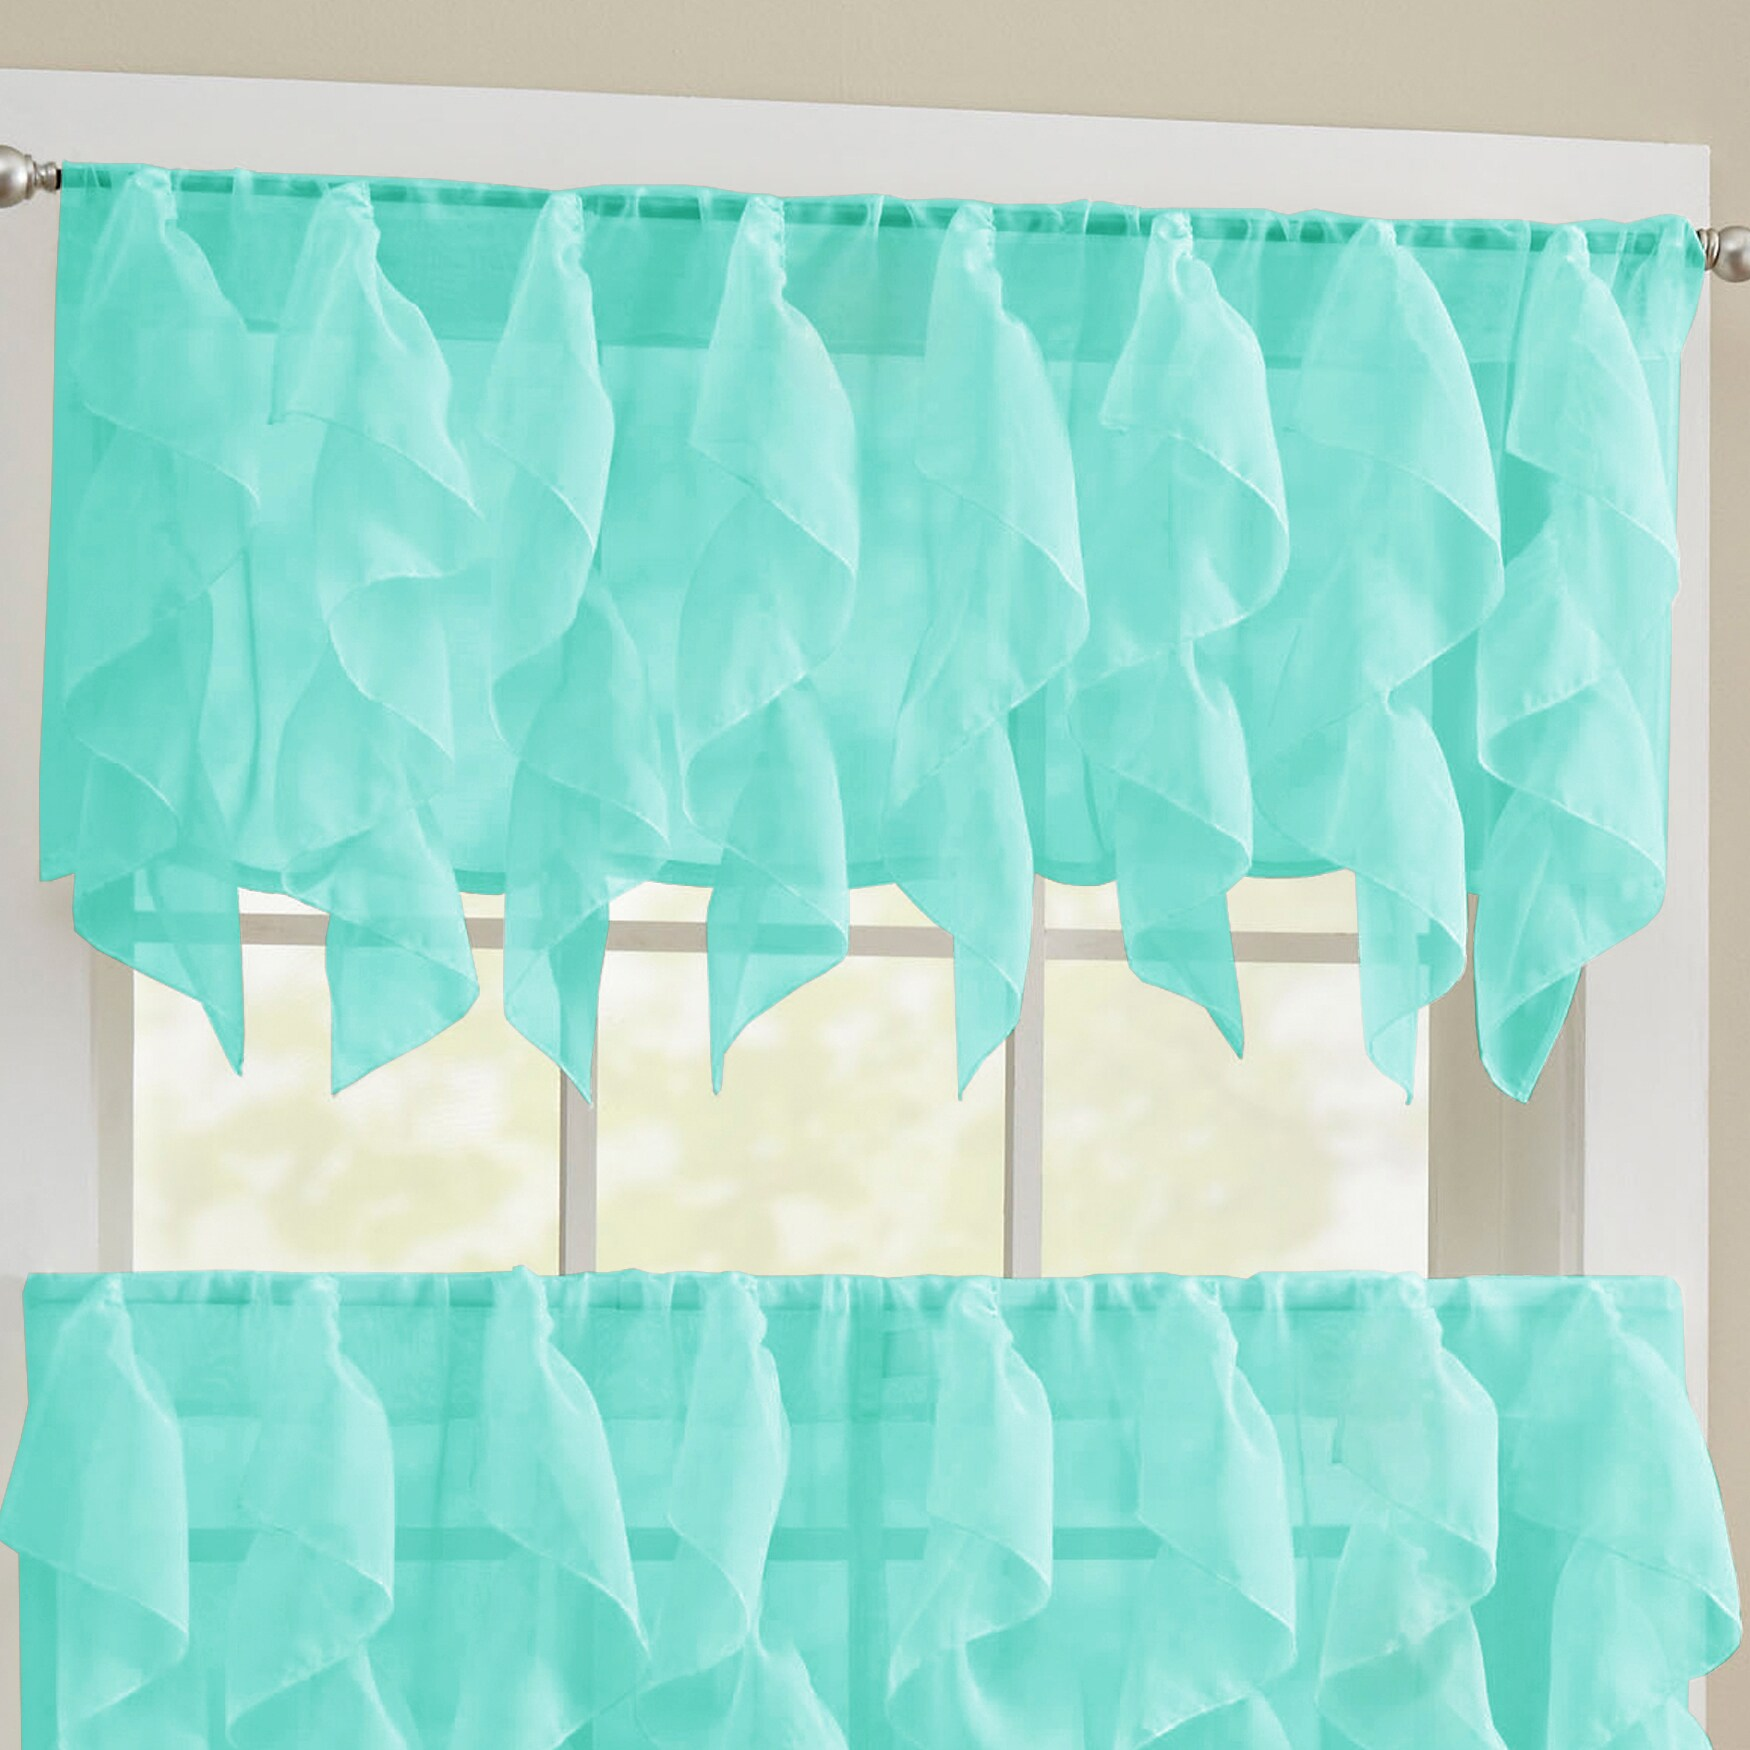 panel kendall window curtain pin thermal turquoise eclipse curtains treatment blackout com amazon panels inch kids teal